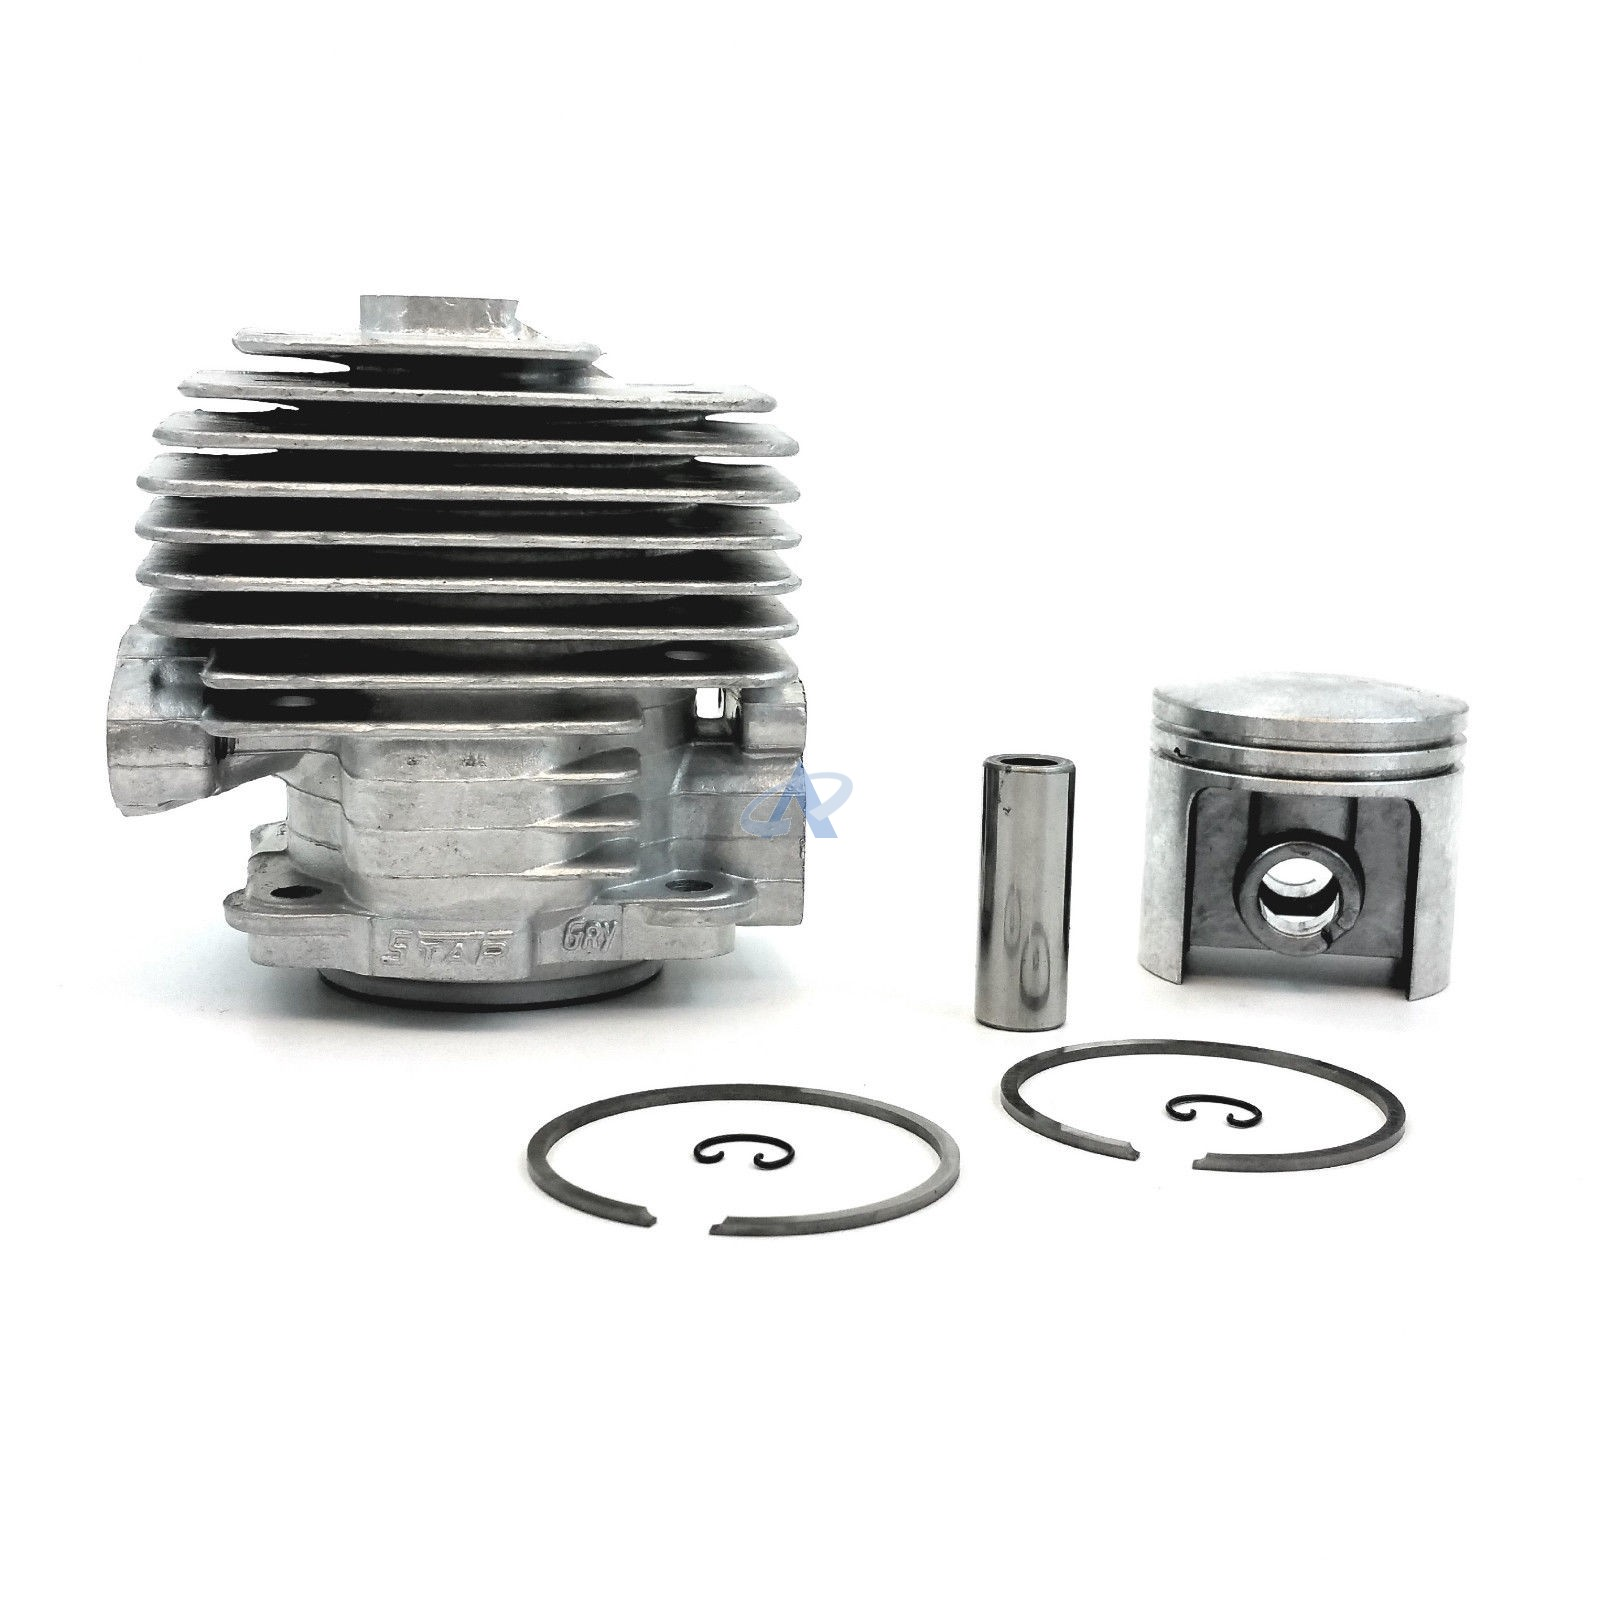 ... Cylinder Kit for STIHL TS350, TS 350 AVE, TS 360 (47mm) ...